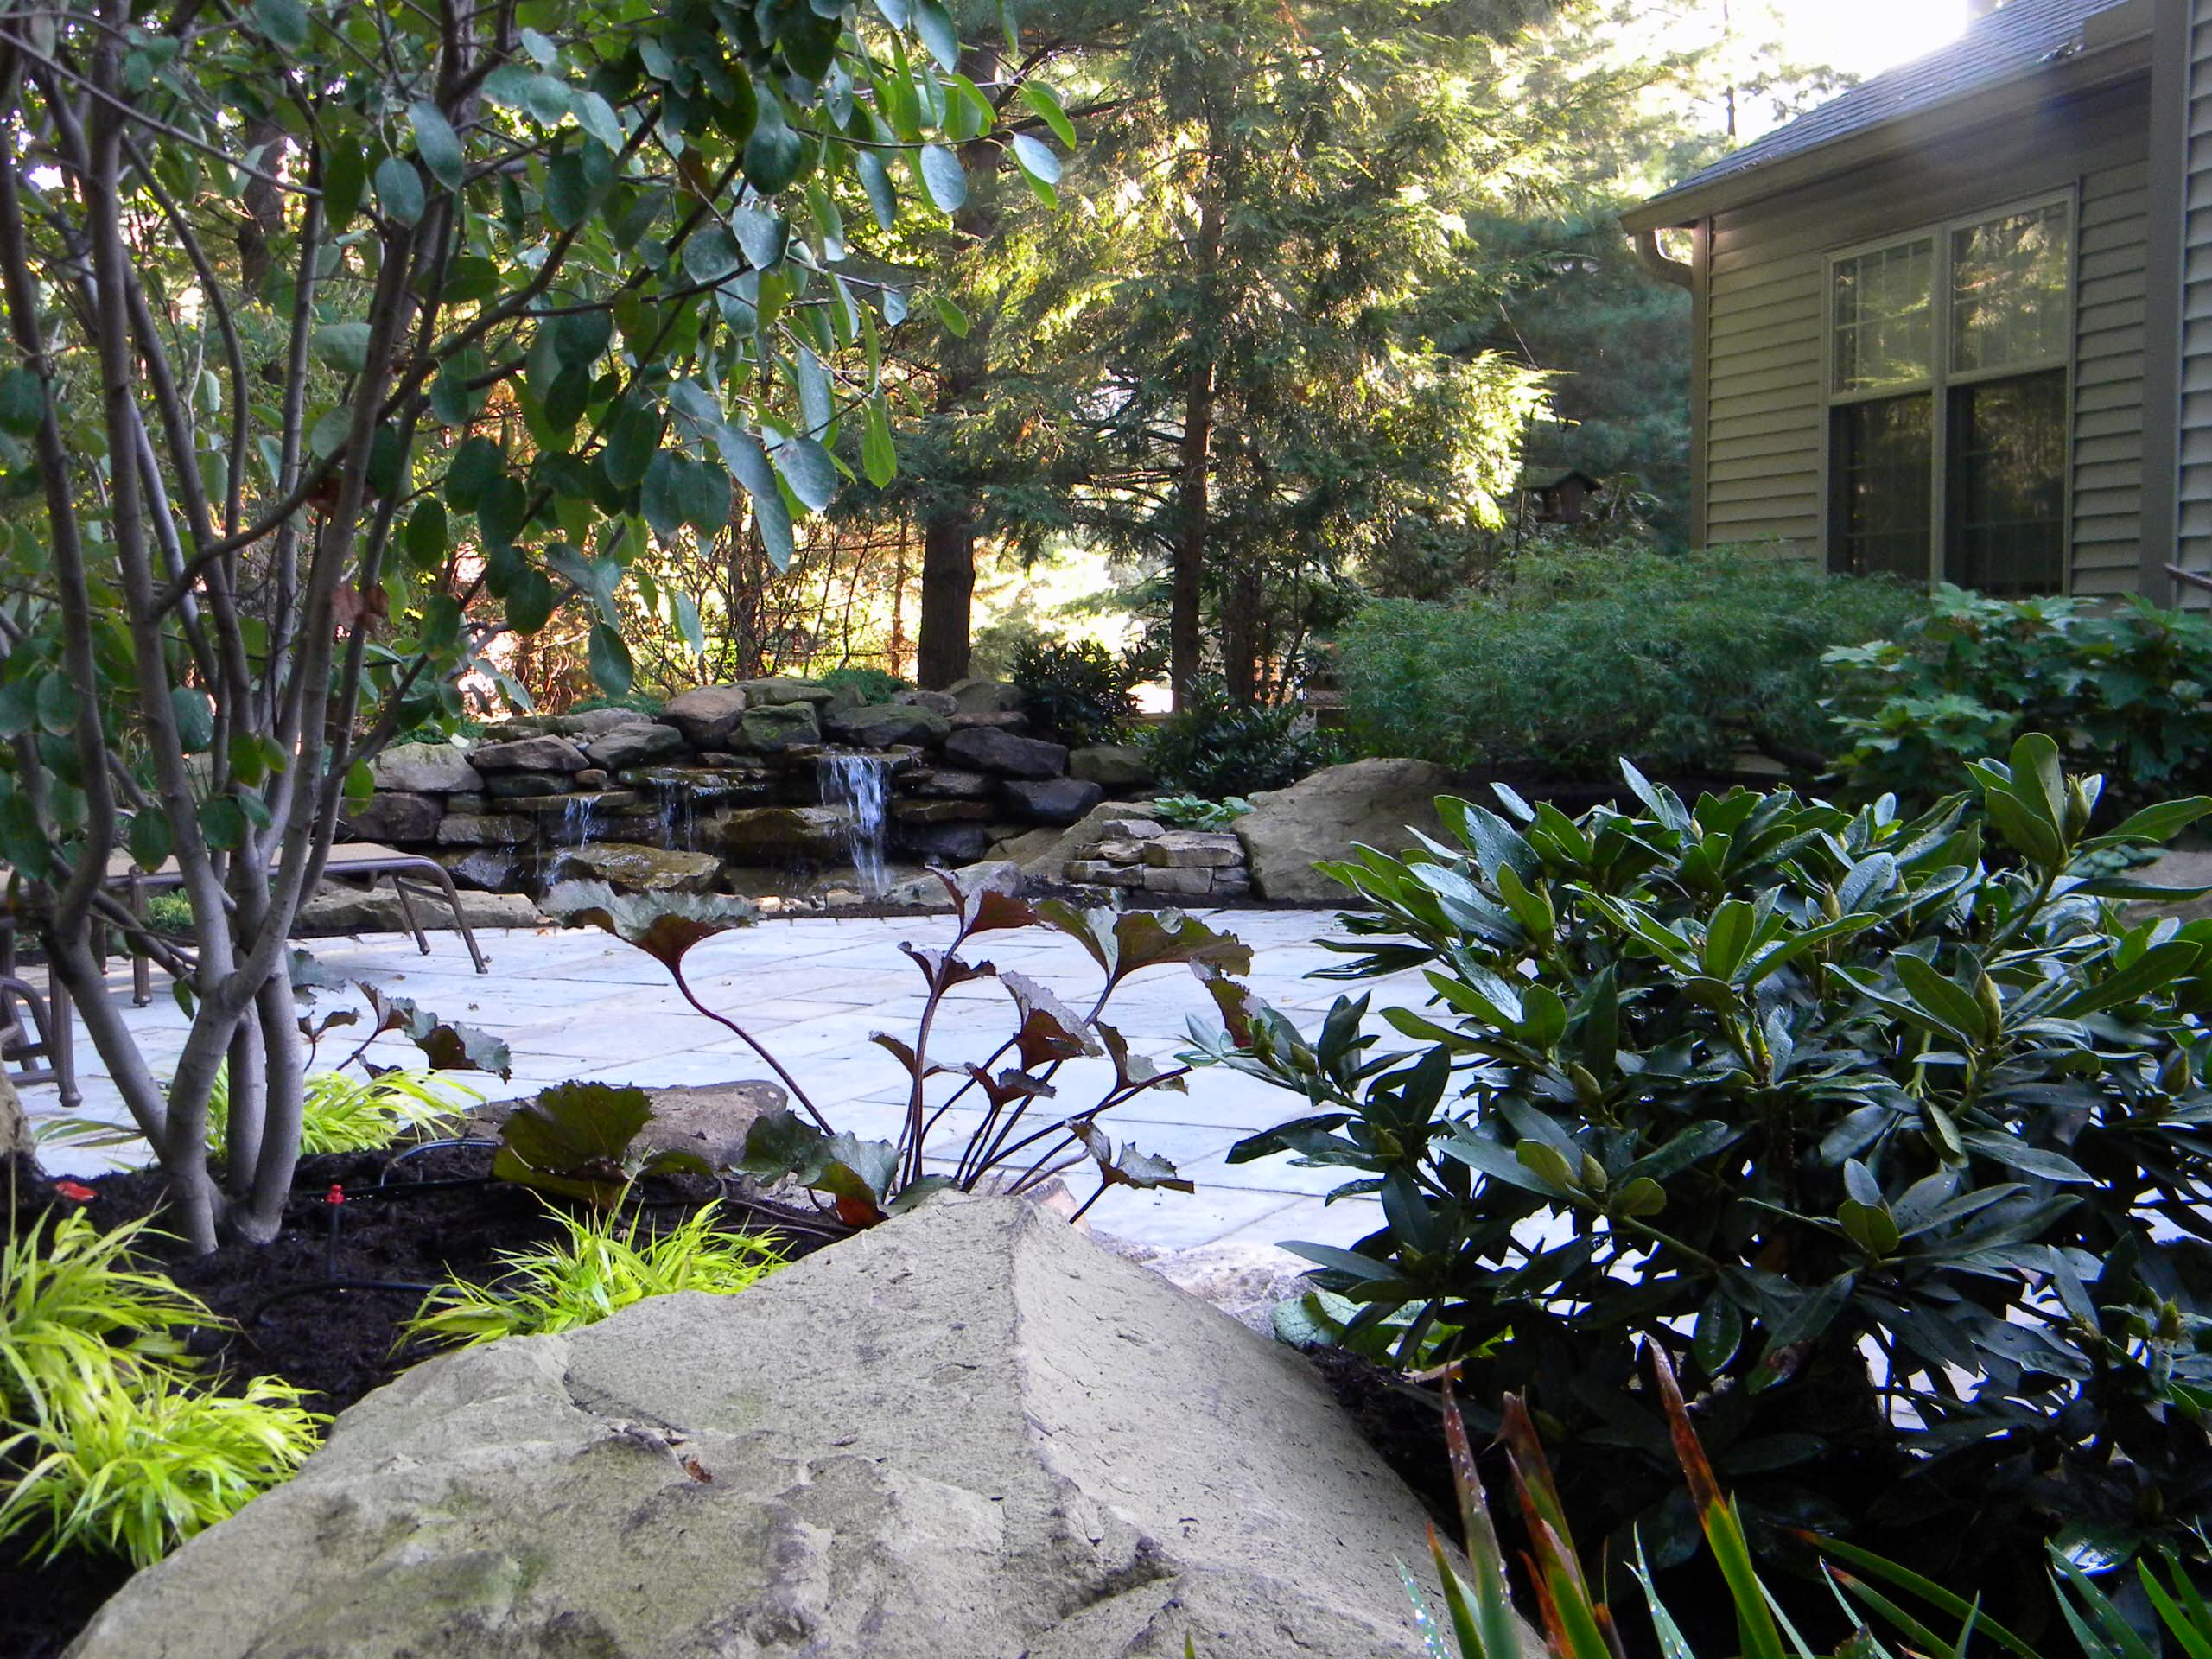 Blue Stone Patio and Waterfall